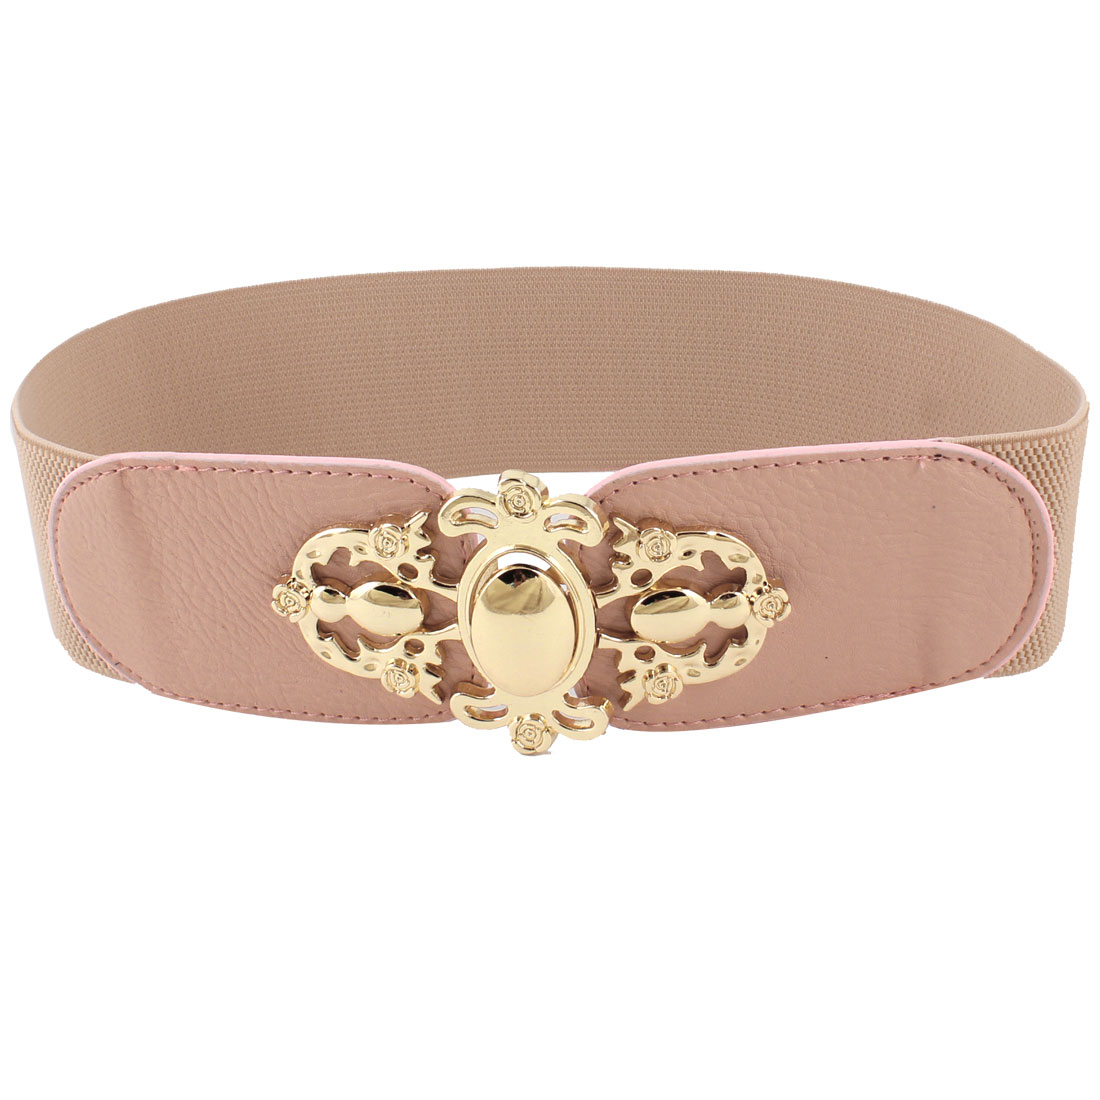 Ladies Interlock Buckle 6cm Width Cut Off Floral Decor Elastic Belt Peach Color